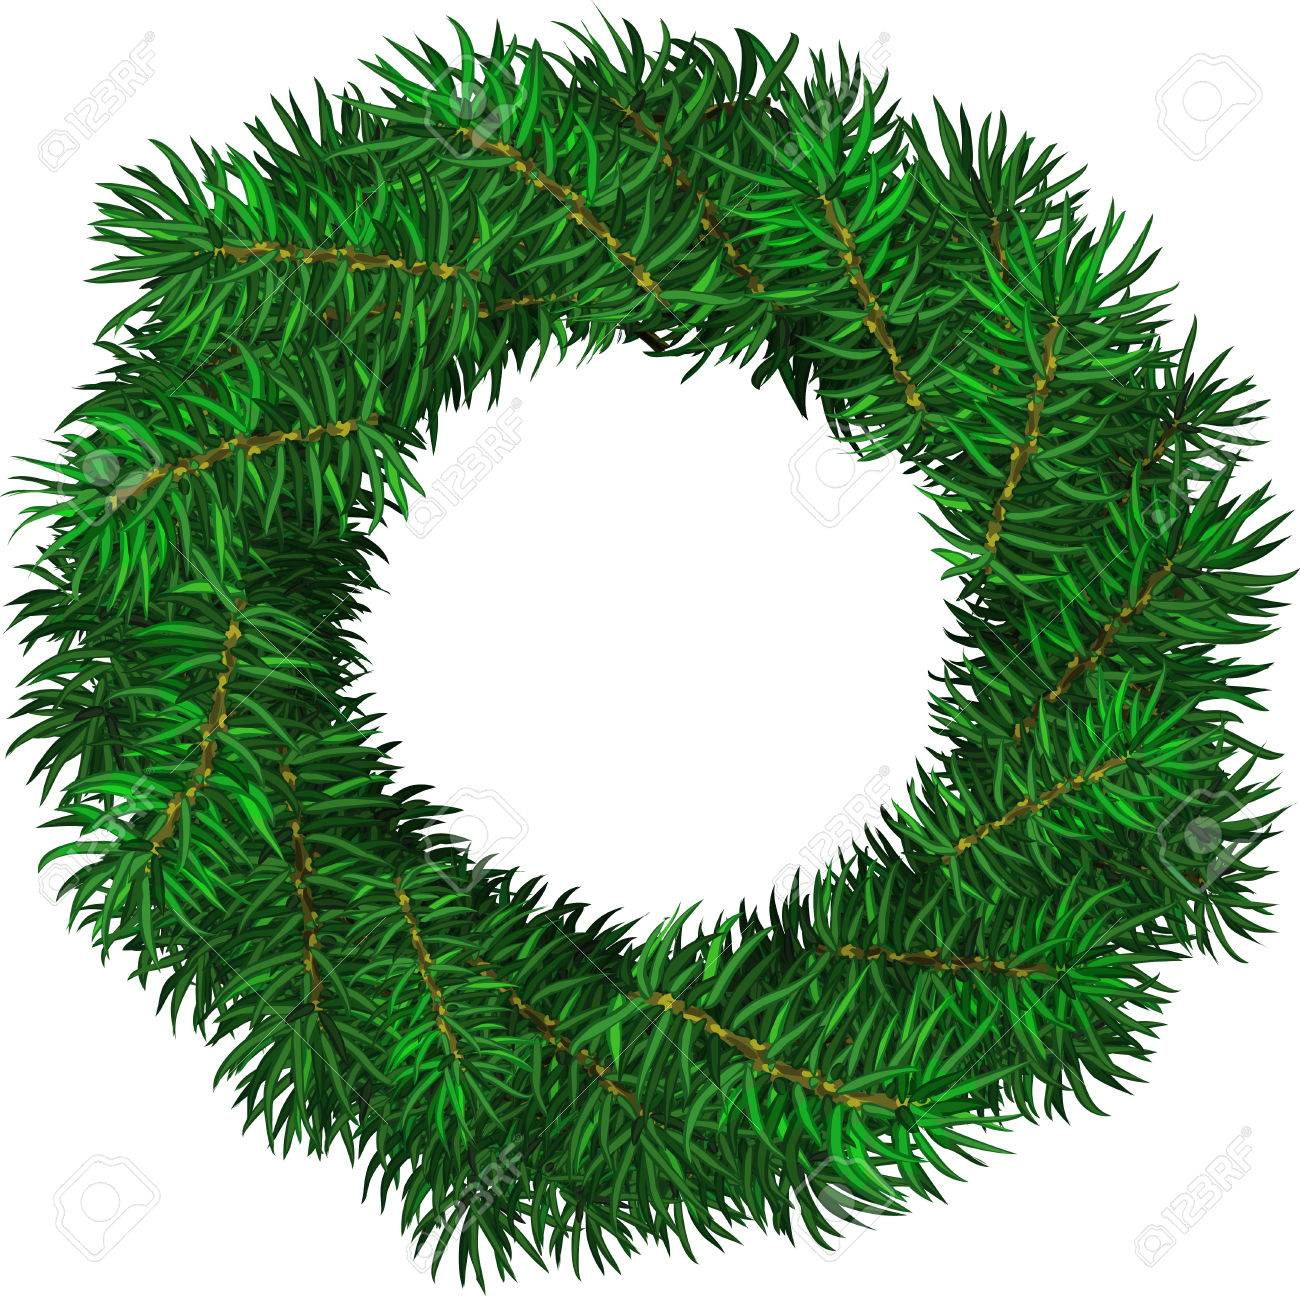 Simple Evergreen Holiday Wreath In Circular Shape Vector Isolated Royalty Free Cliparts Vectors And Stock Illustration Image 44229146